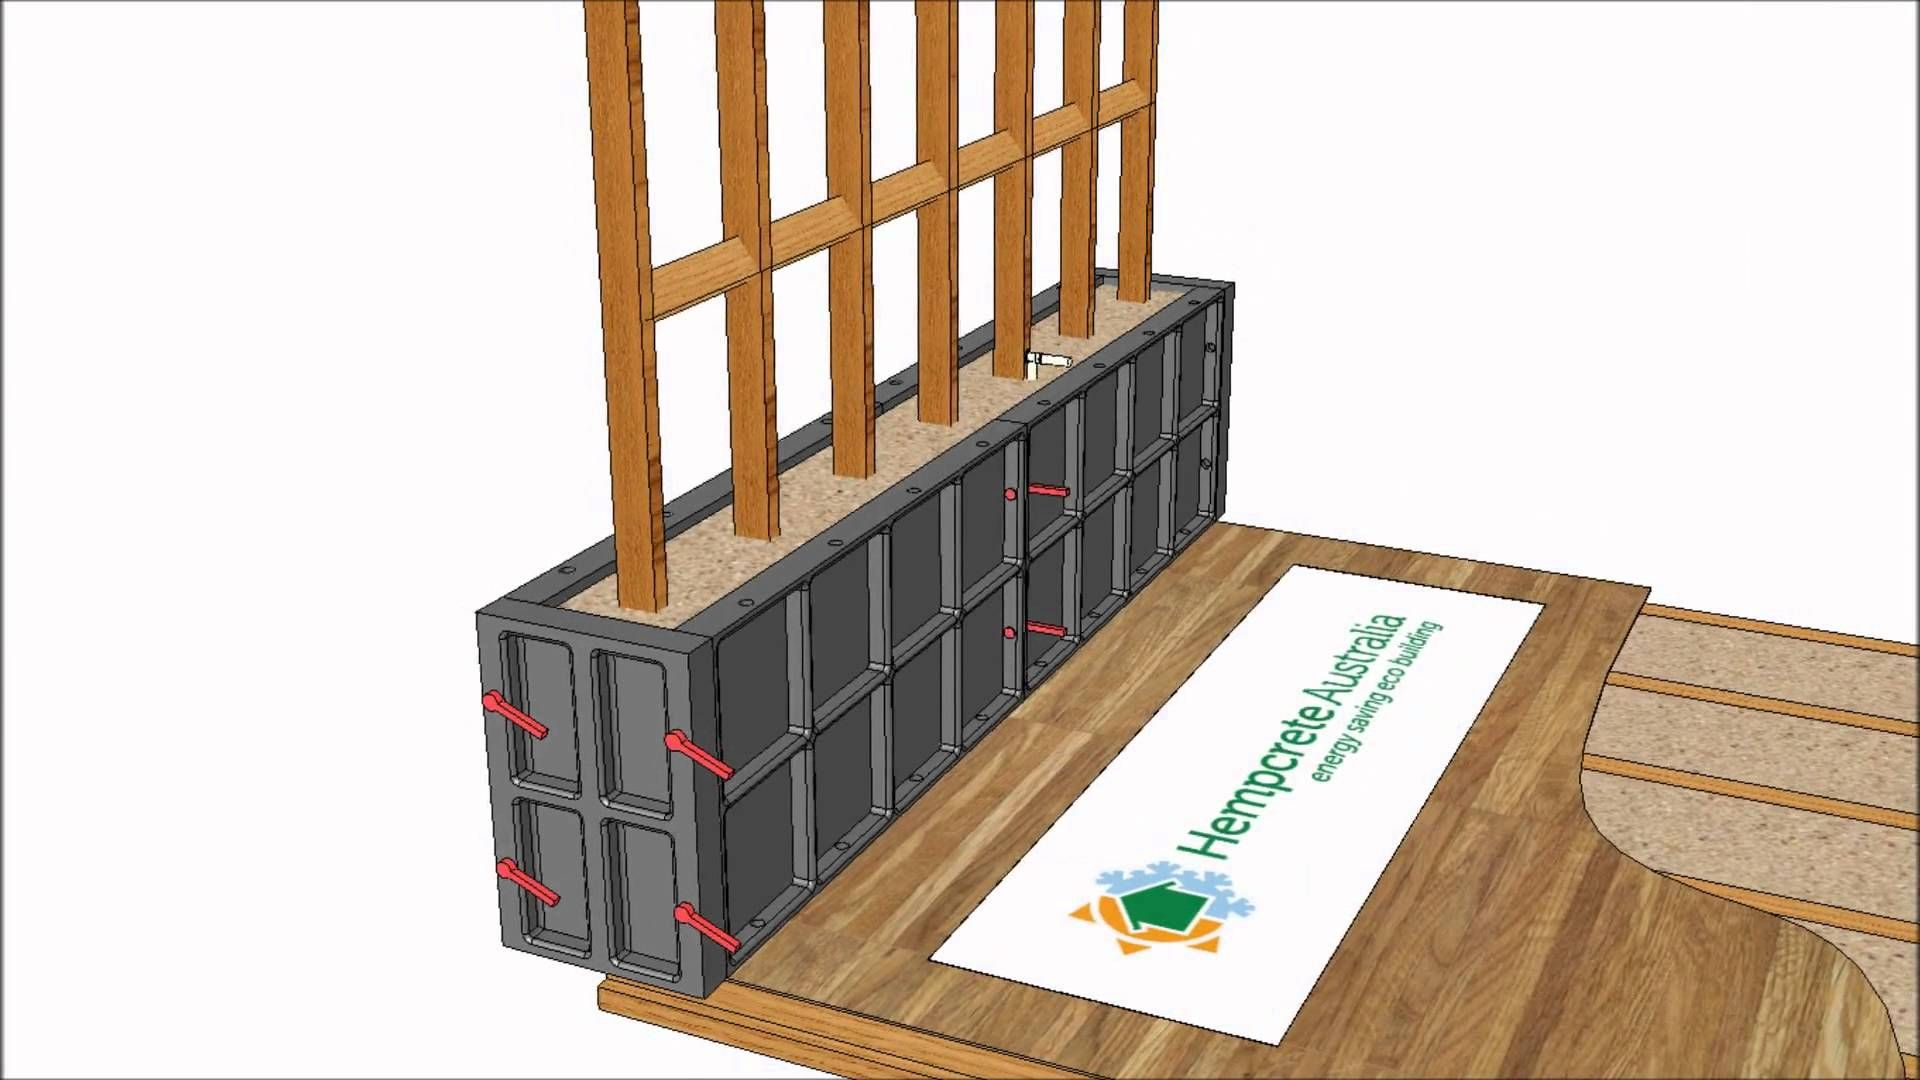 Application Of Hempcrete In A Post And Beam Construction Sustainable Building Materials Post And Beam Energy Efficient Buildings